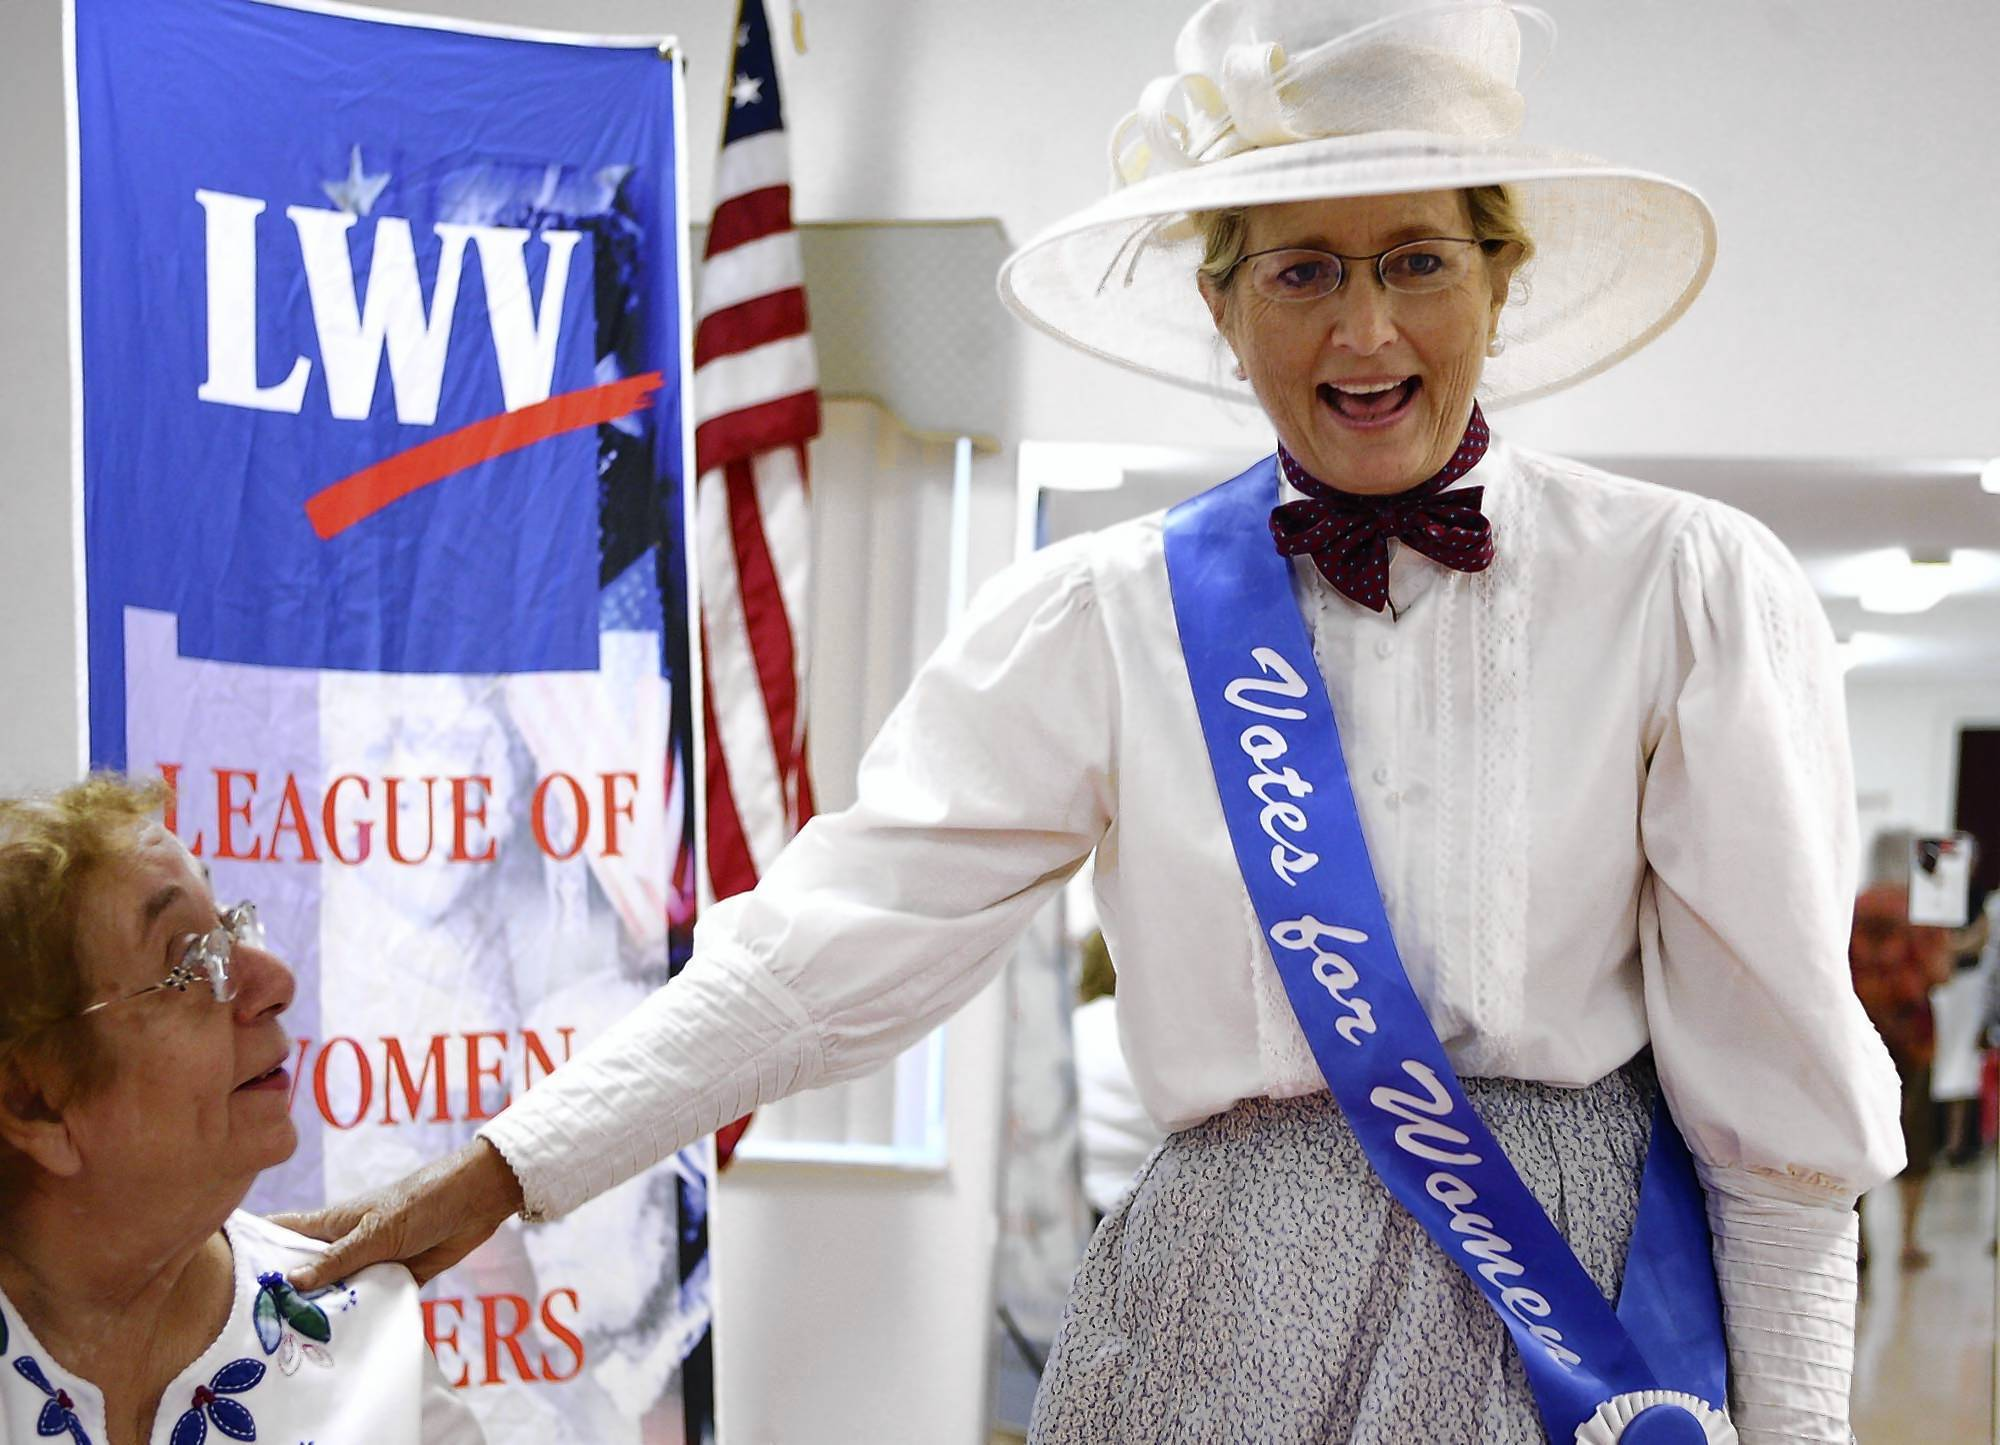 Deirdre Macnab, president of the League of Women Voters of Florida, greets league members at the Lady Lake Community Building on Friday, August 24, 2012. Macnab is dressed as women's suffragist Susan B. Anthony. (Stephen M. Dowell/Orlando Sentinel)